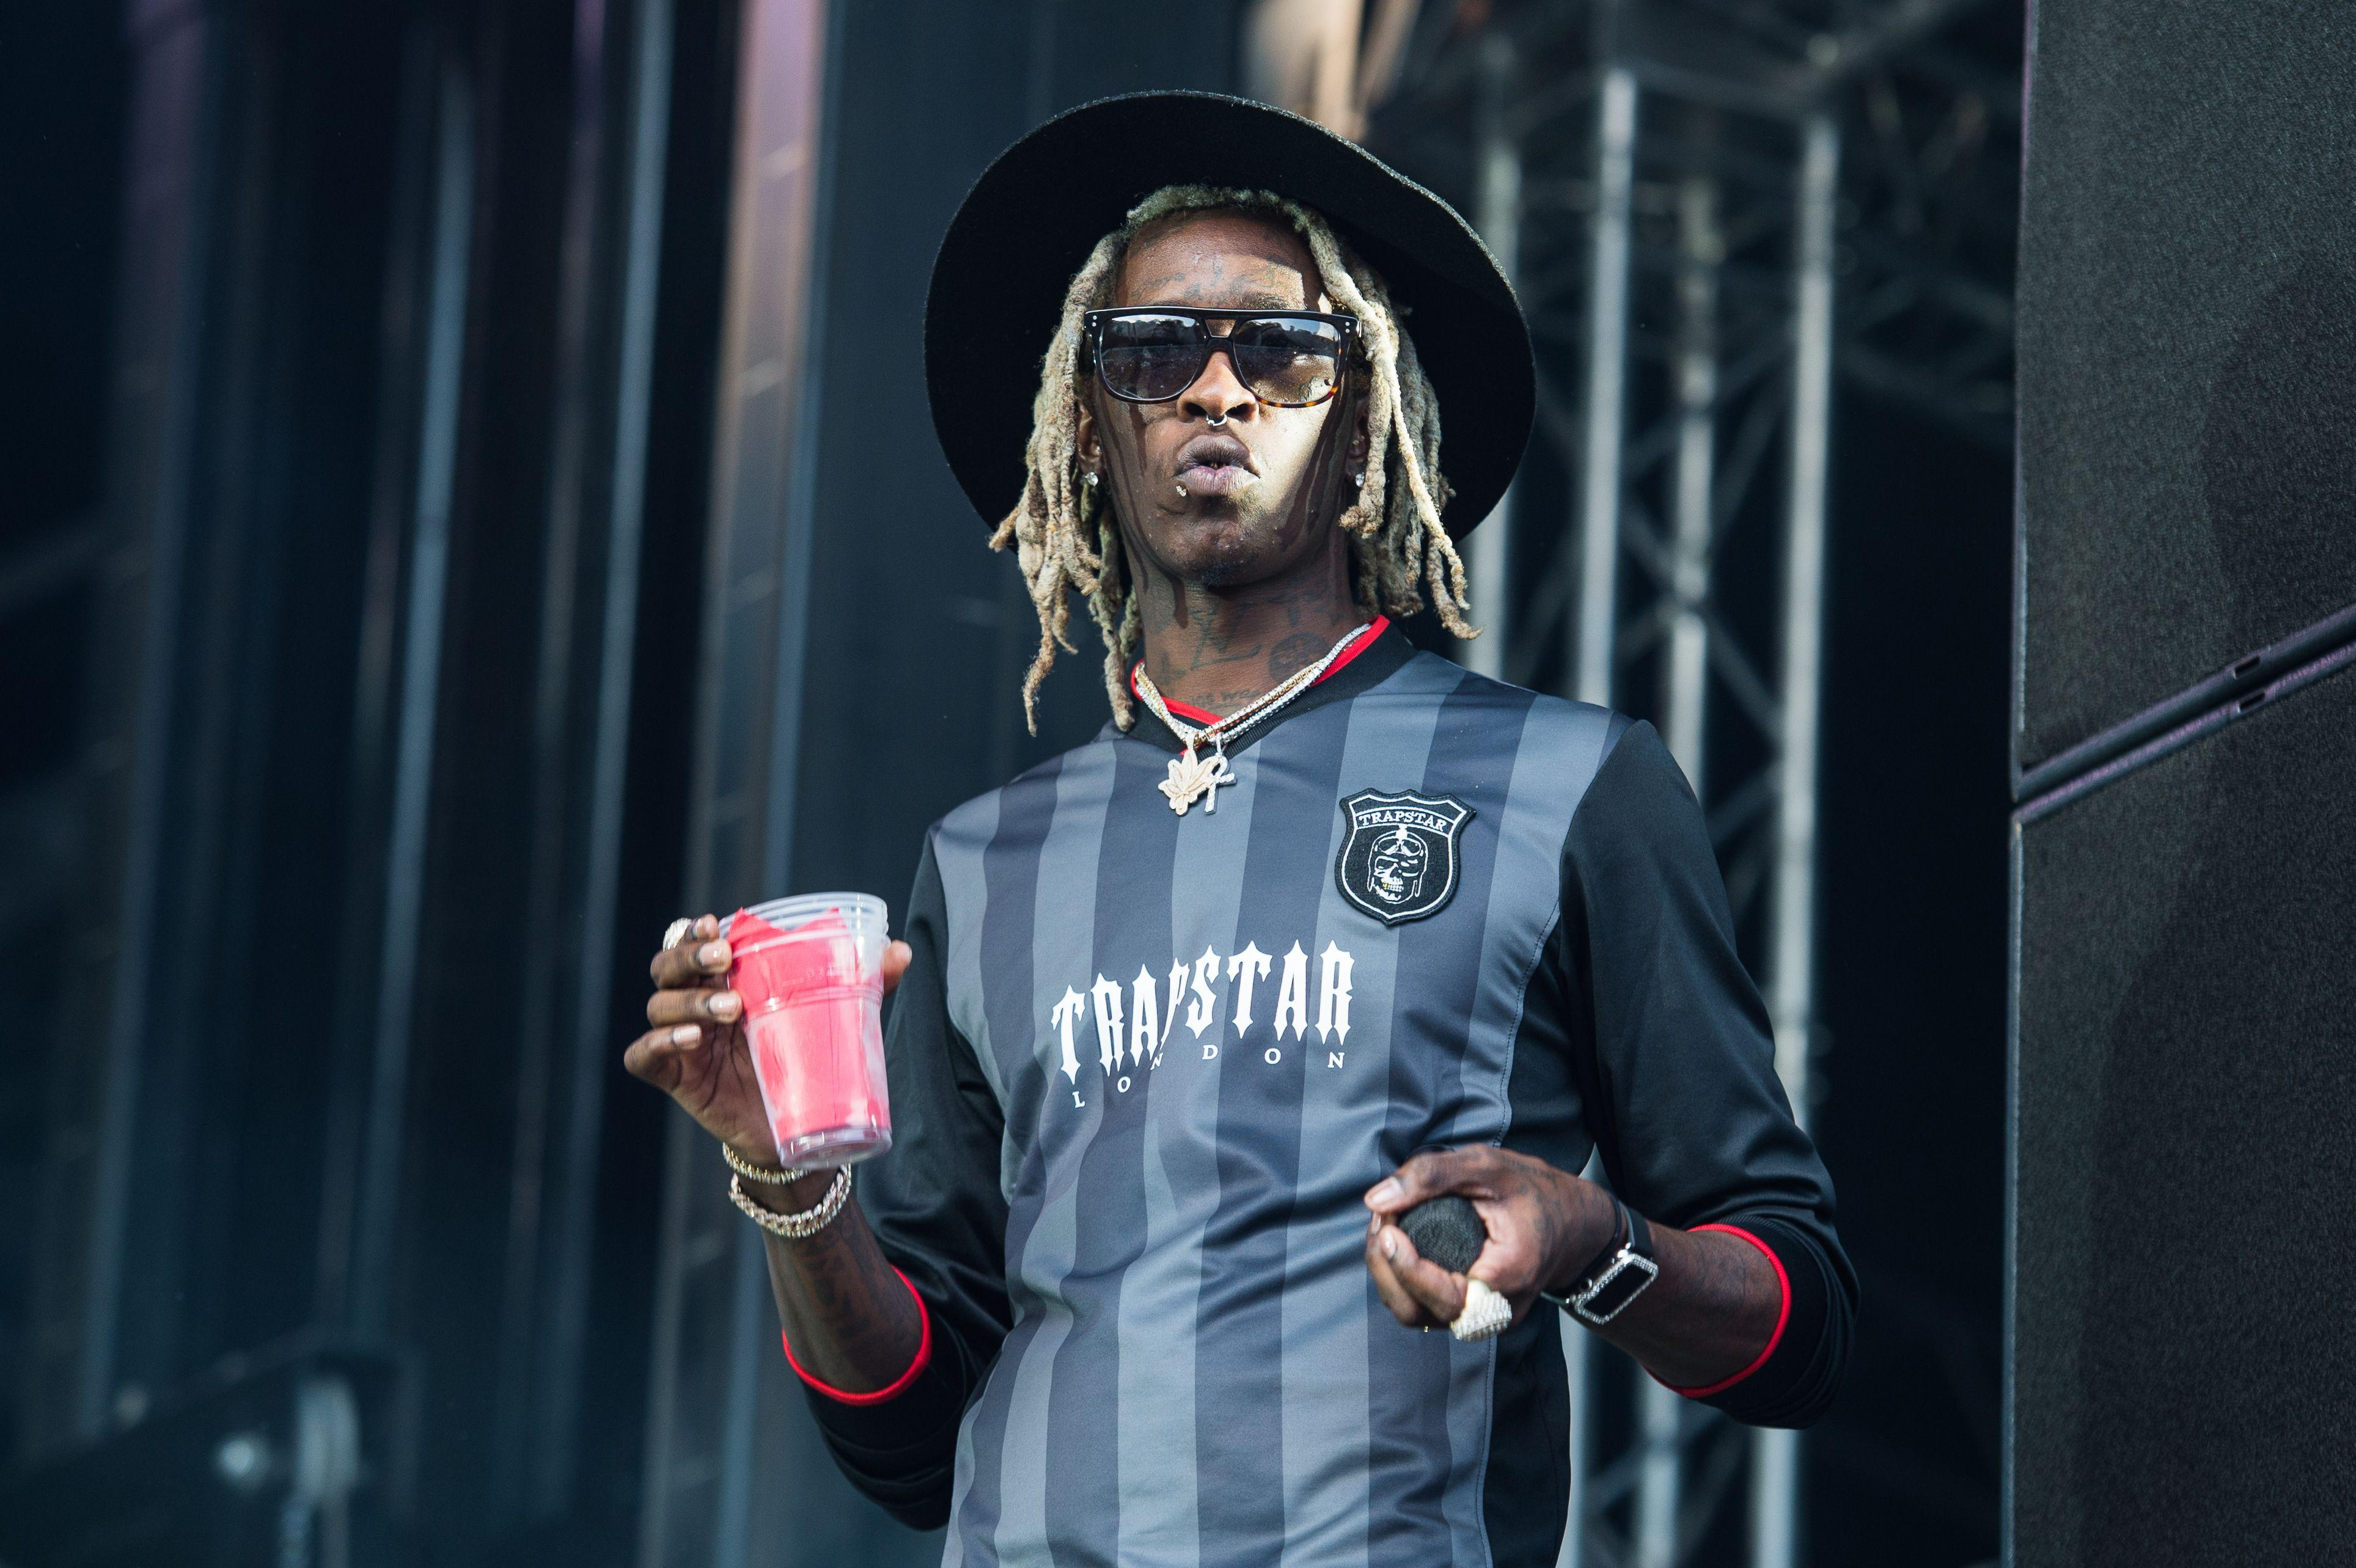 Young Thug Wallpapers Images Photos Pictures Backgrounds - Young Thug Trap Star , HD Wallpaper & Backgrounds